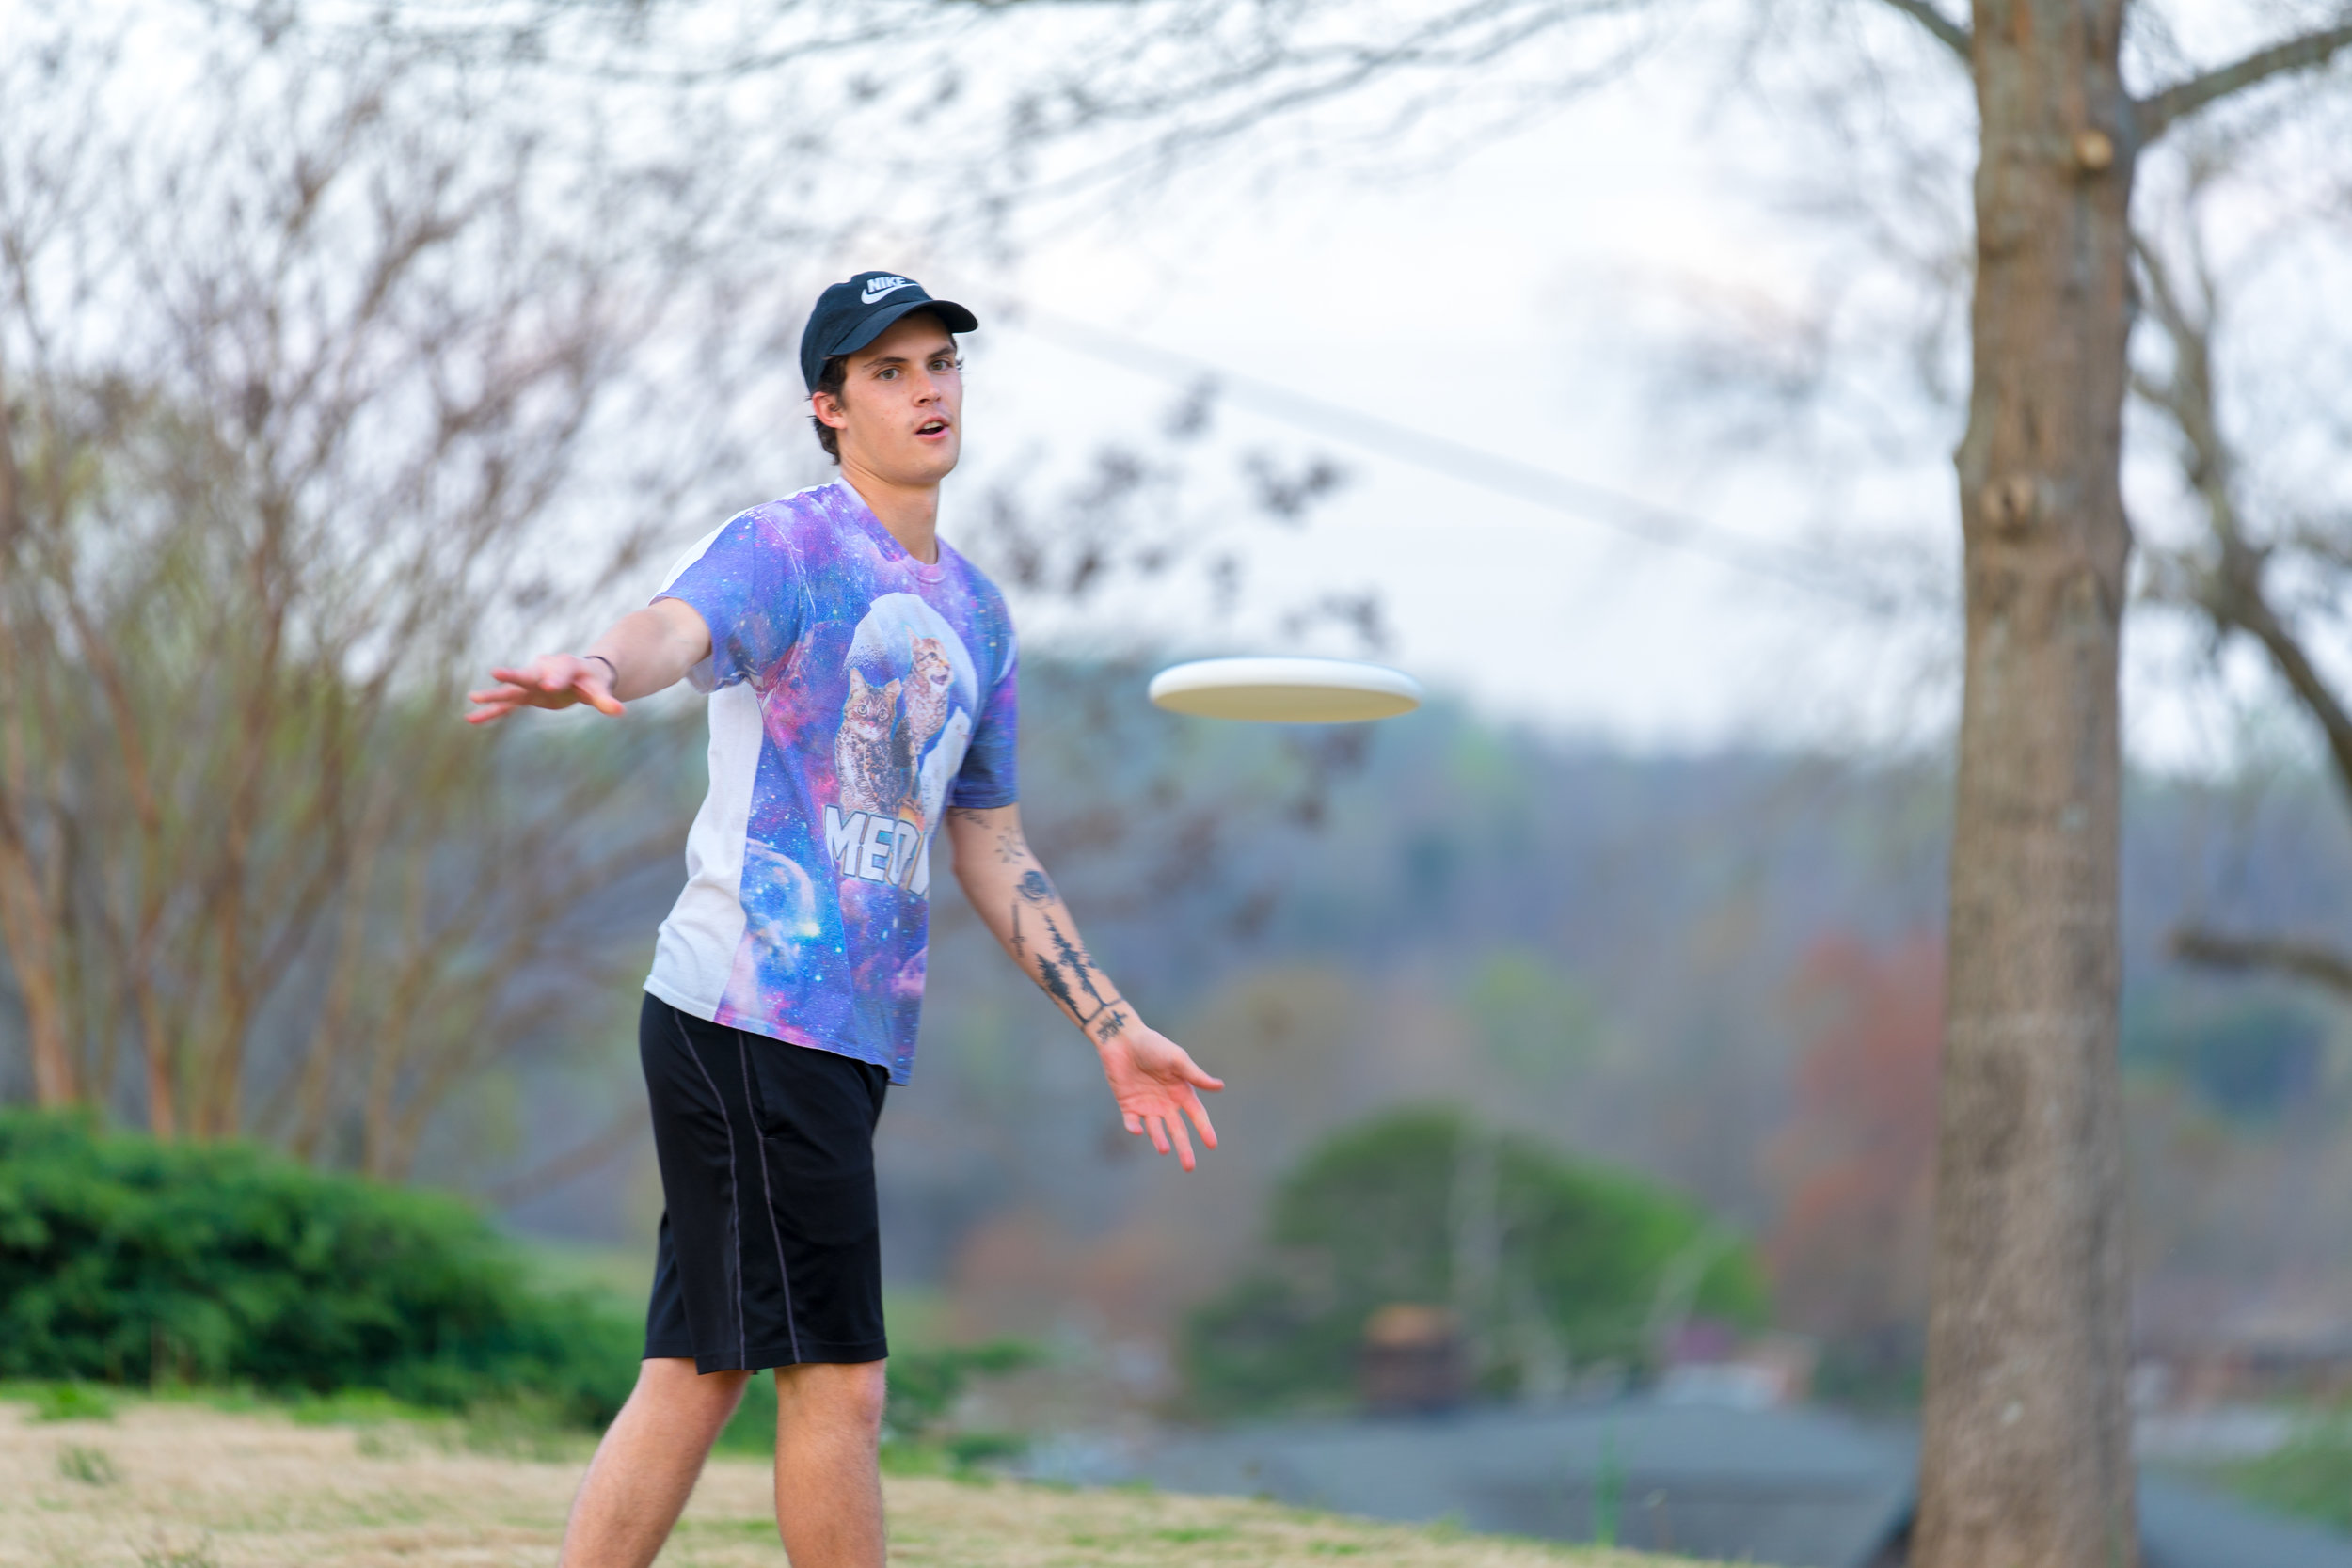 Caleb Kohns returns fire in a game of Frisbee.